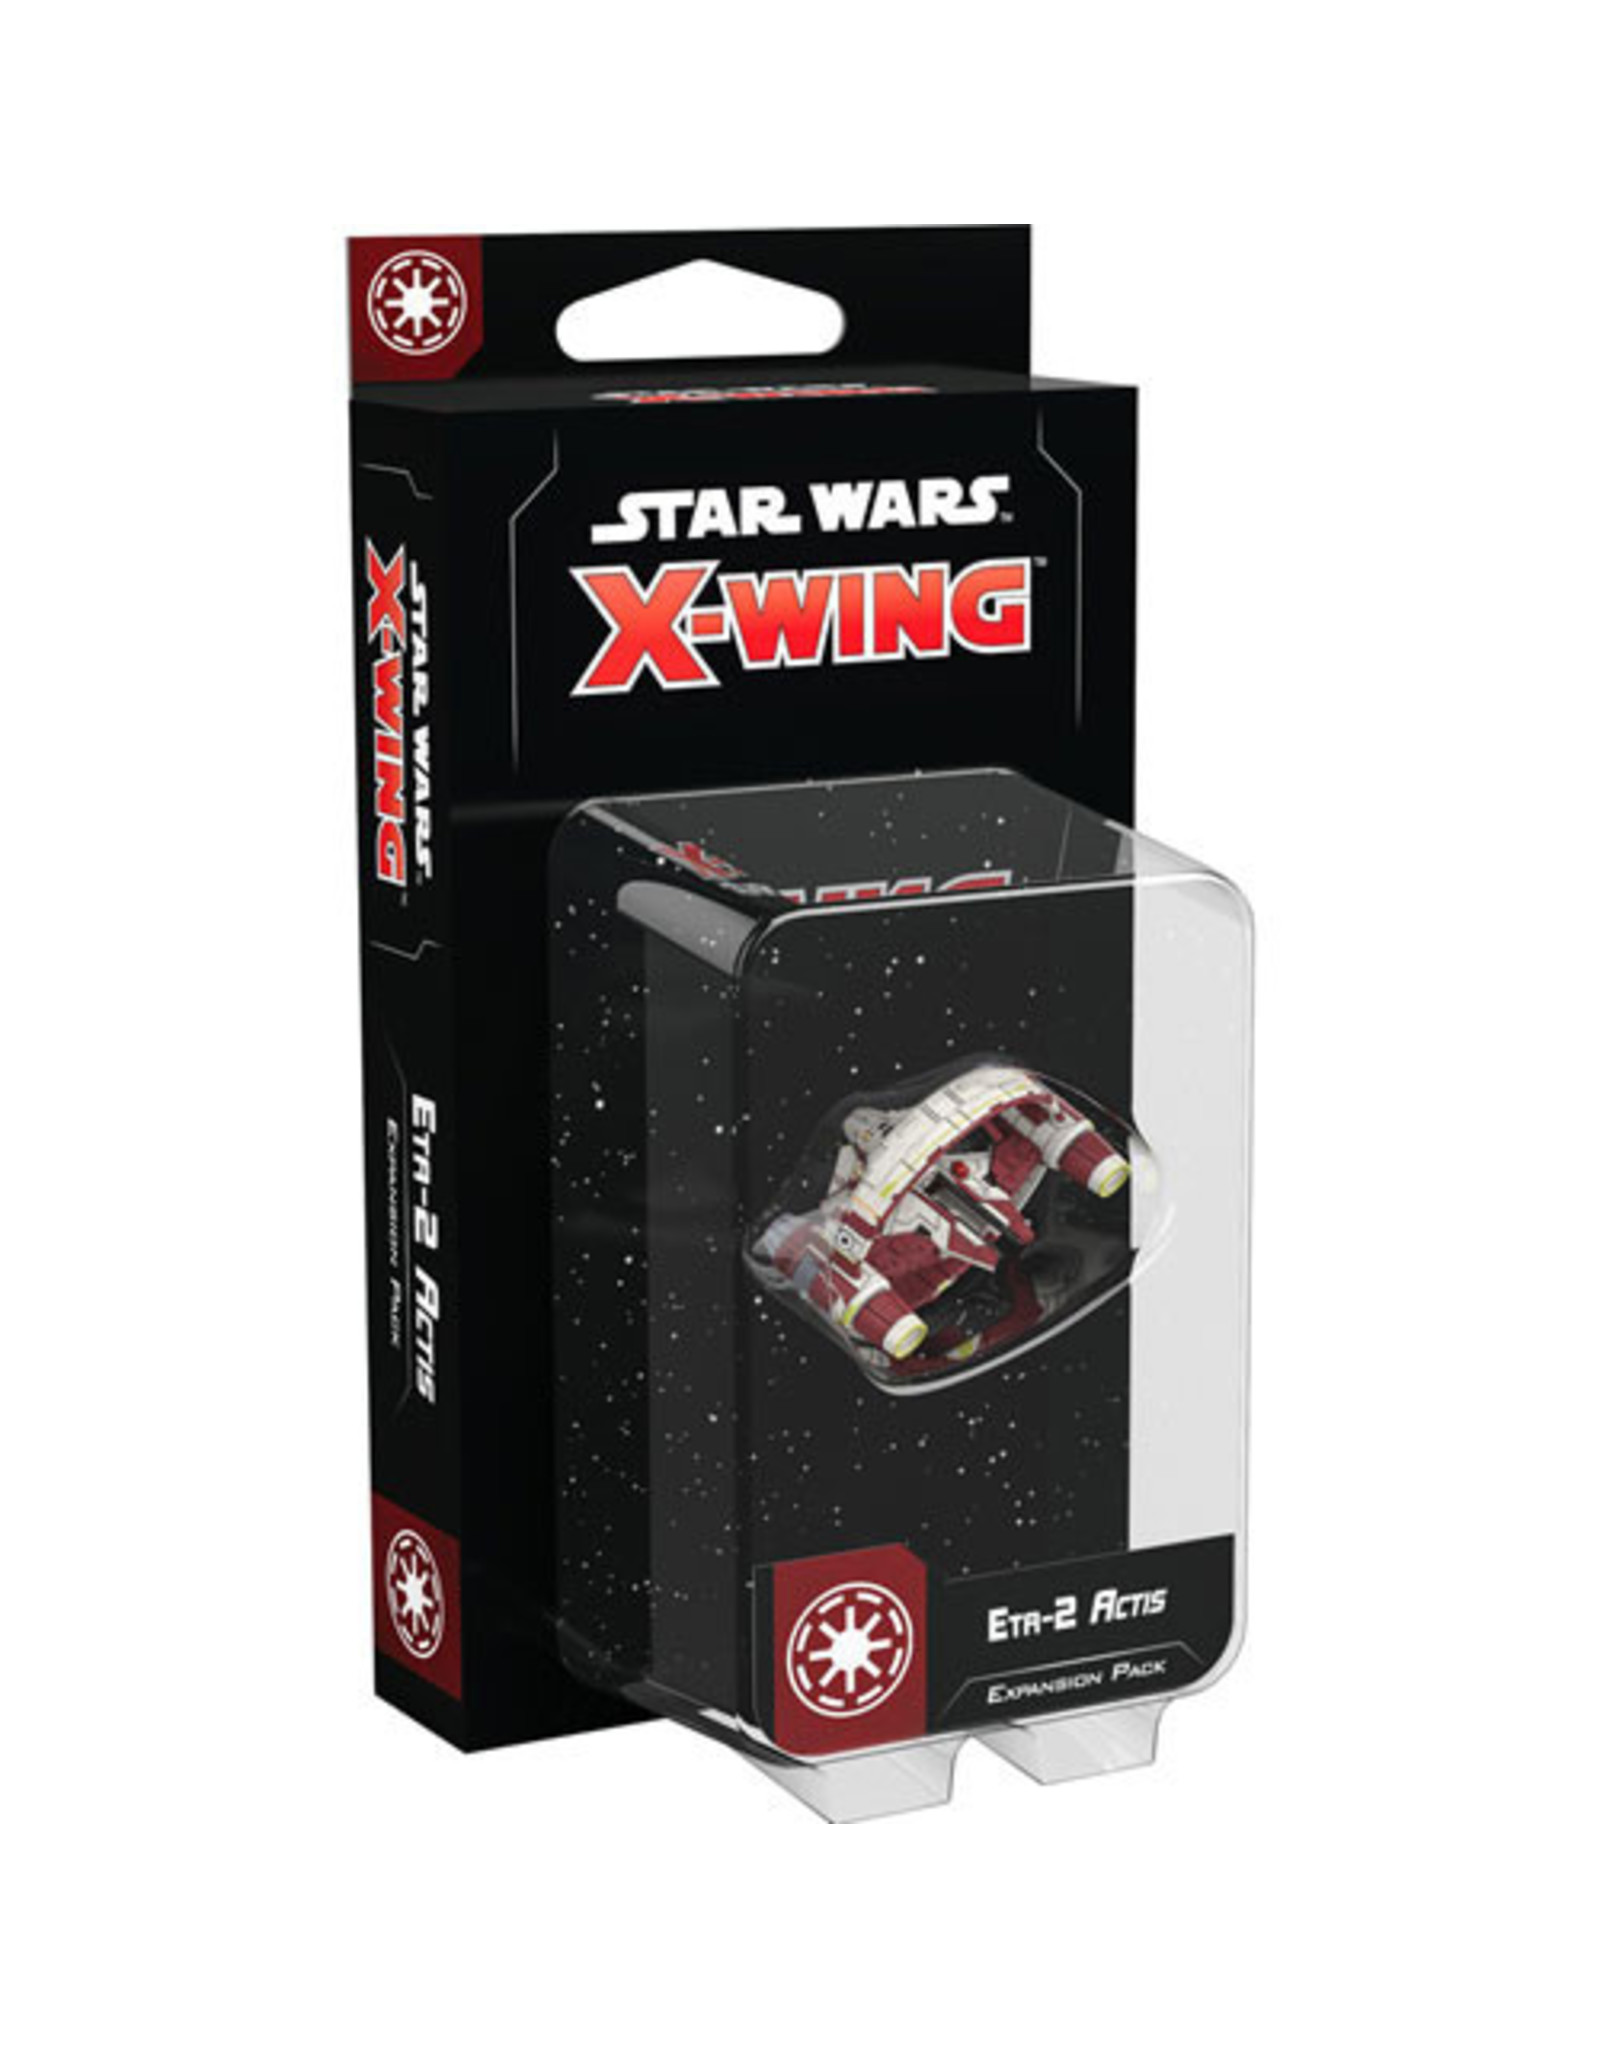 Fantasy Flight Games Star Wars X-Wing 2nd Edition: Eta-2 Actis Expansion Pack